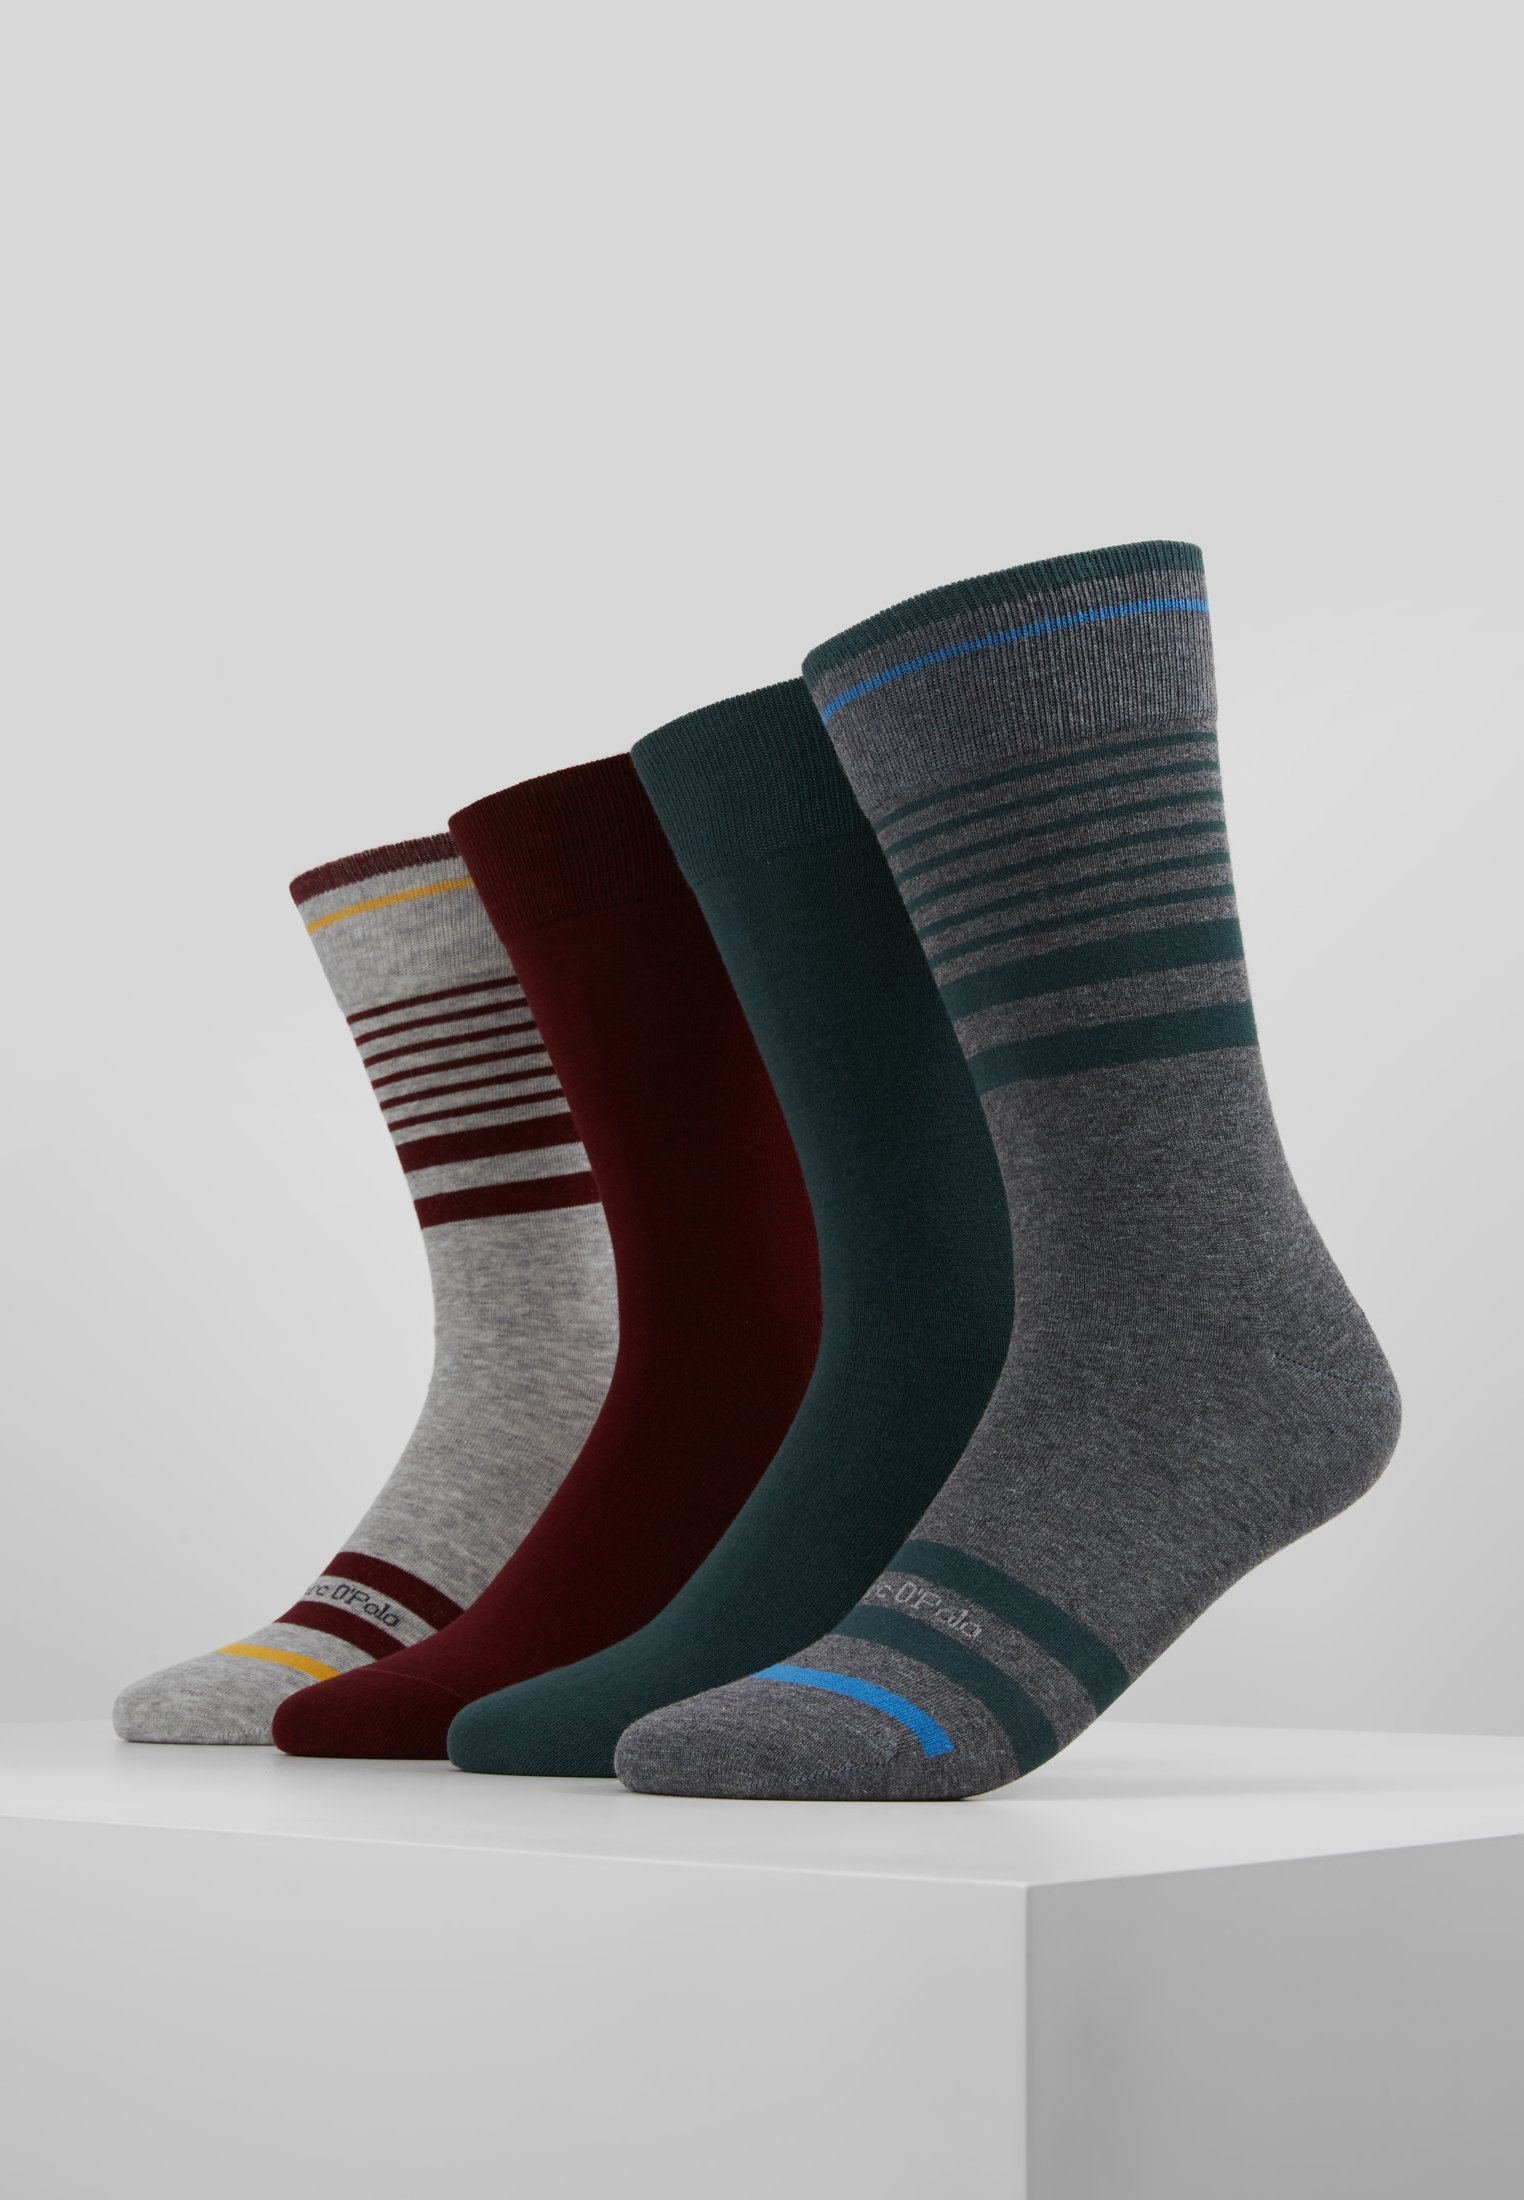 Marc M O'polo green 4packChaussettes Grey red socks srxBQothdC